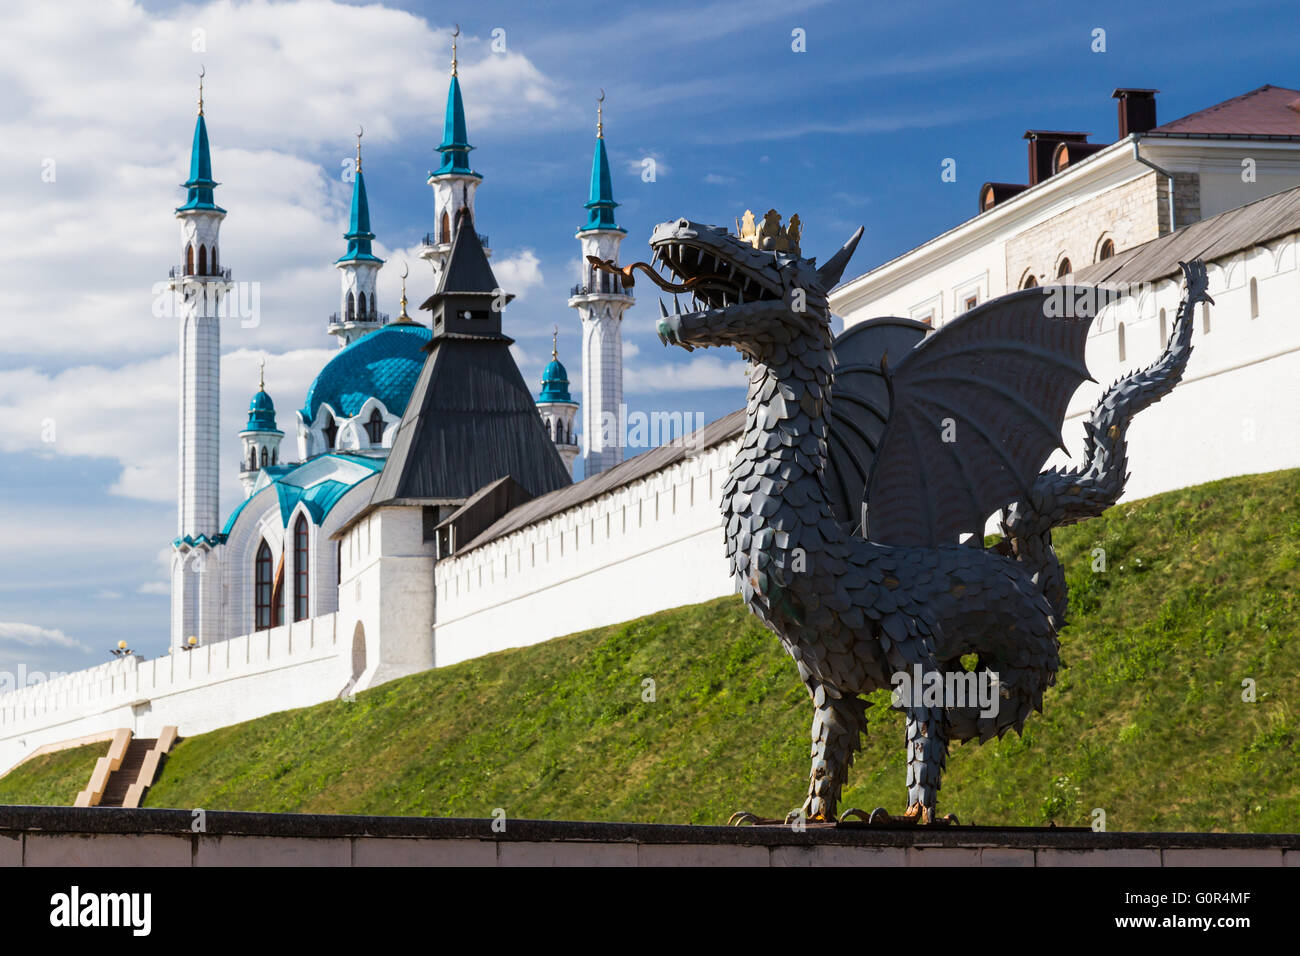 Dragon and Qol Sharif Mosque, Kazan, Russia - Stock Image